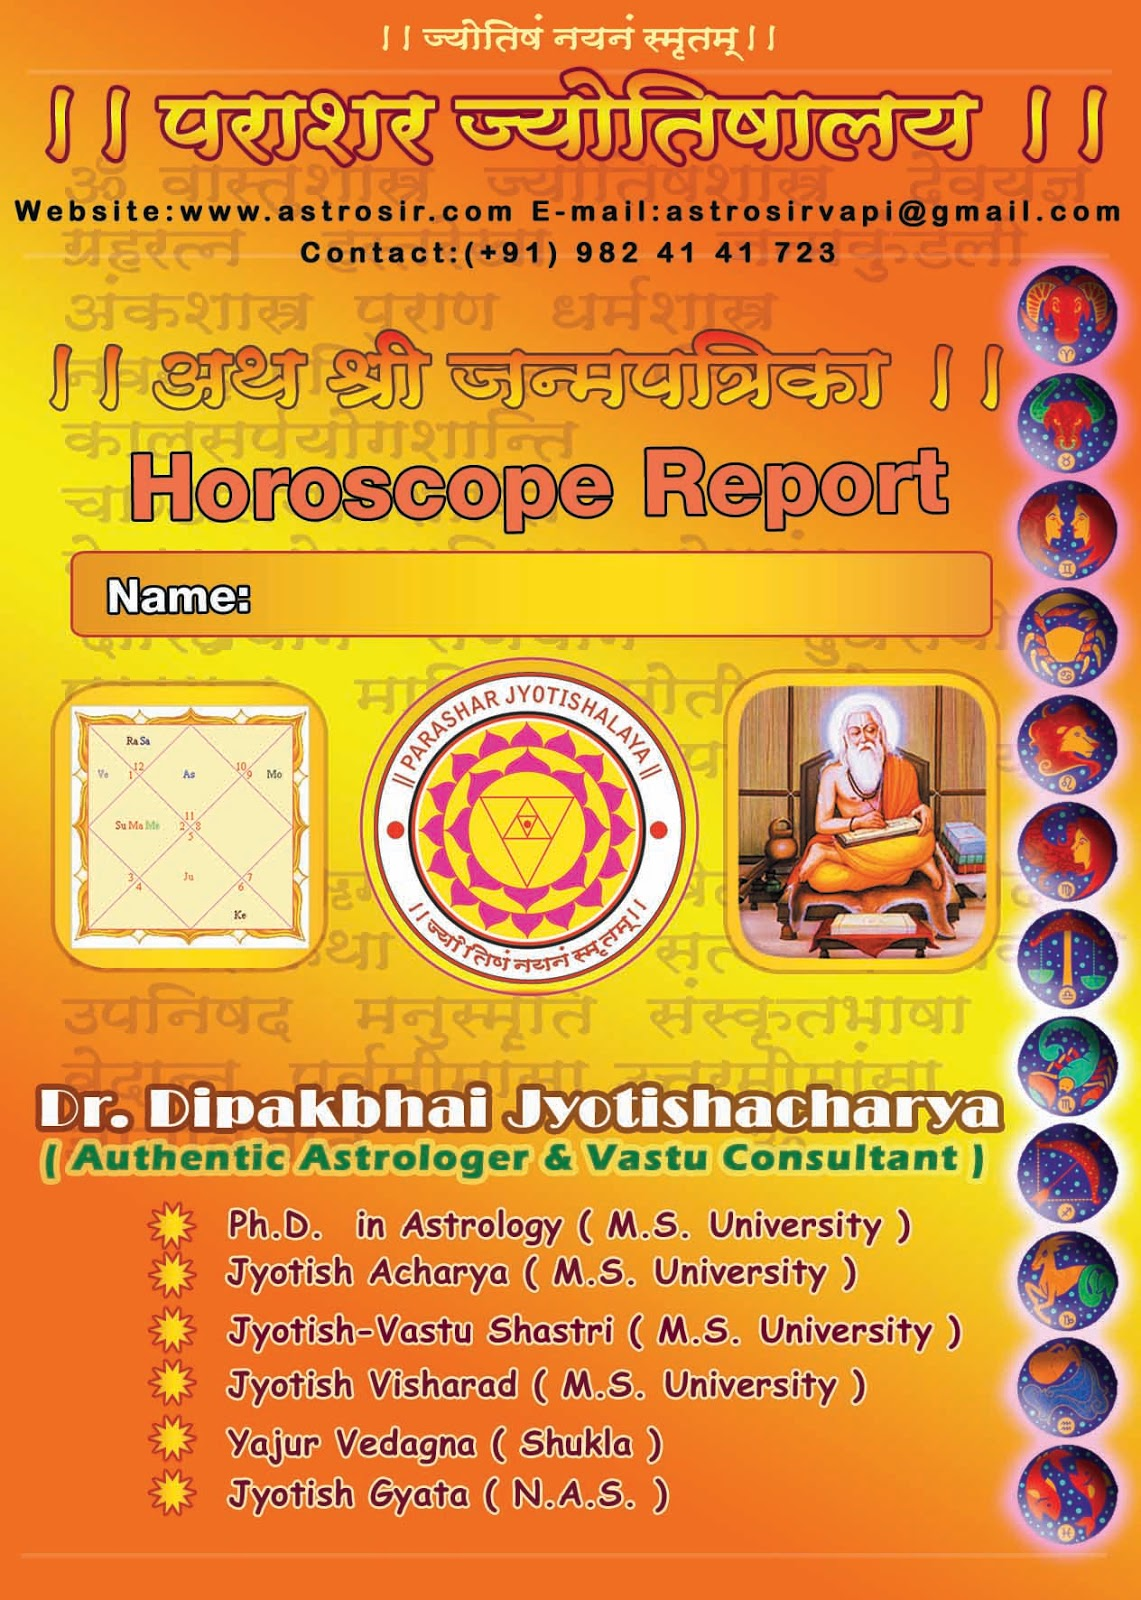 vishkanya yoga in horoscope